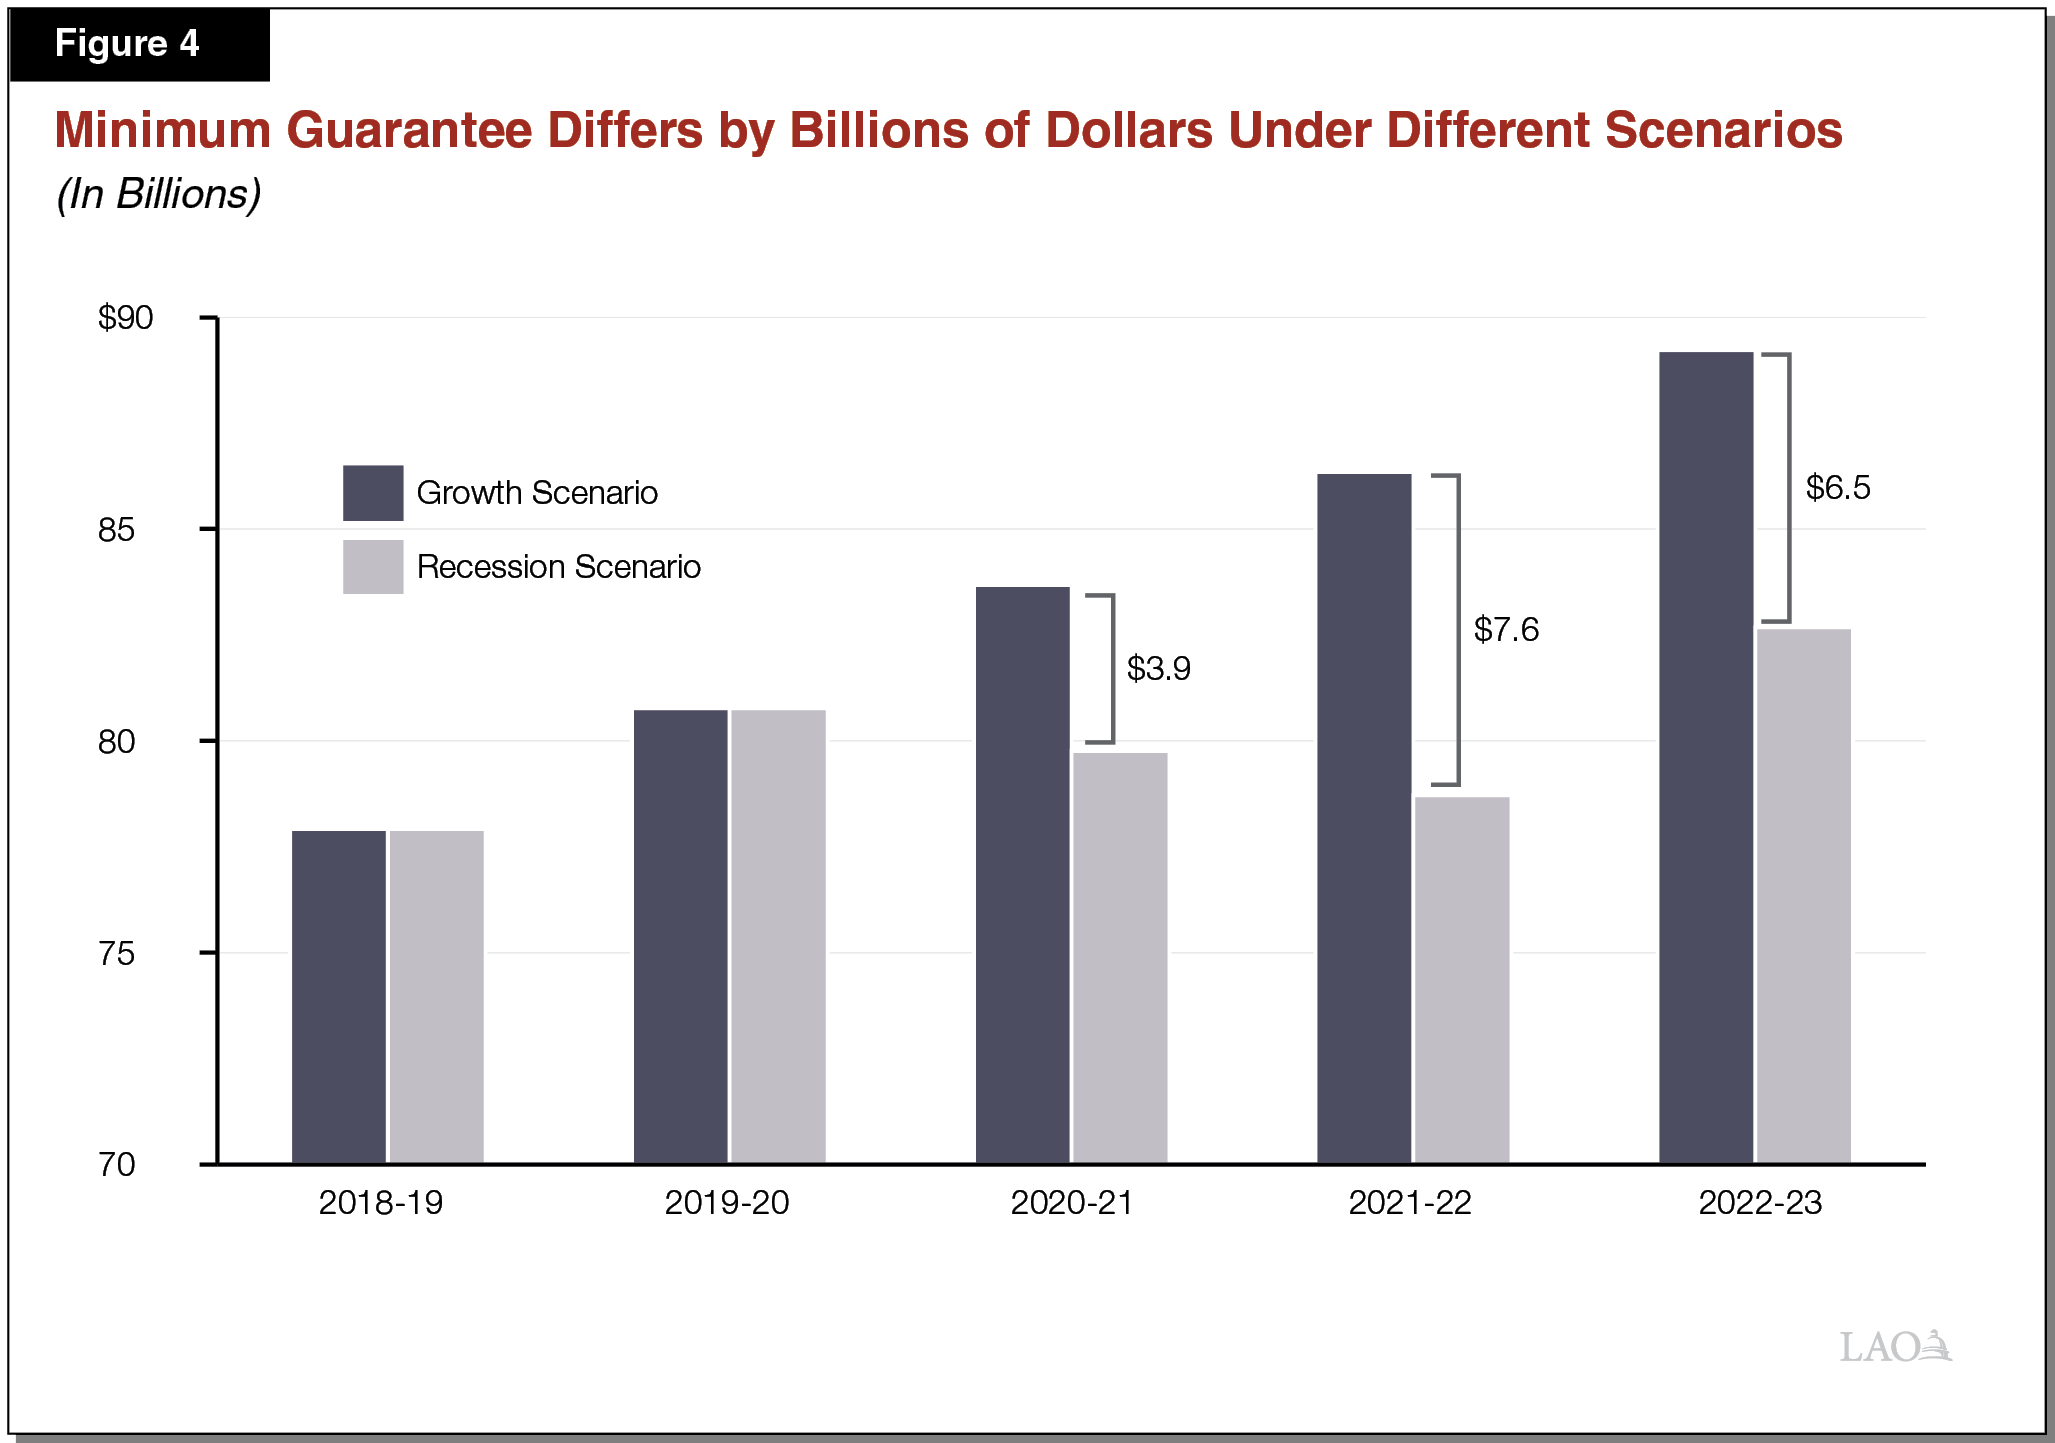 Figure 4 - Minimum Guarantee Differs by Billions of Dollars Under Different Scenarios